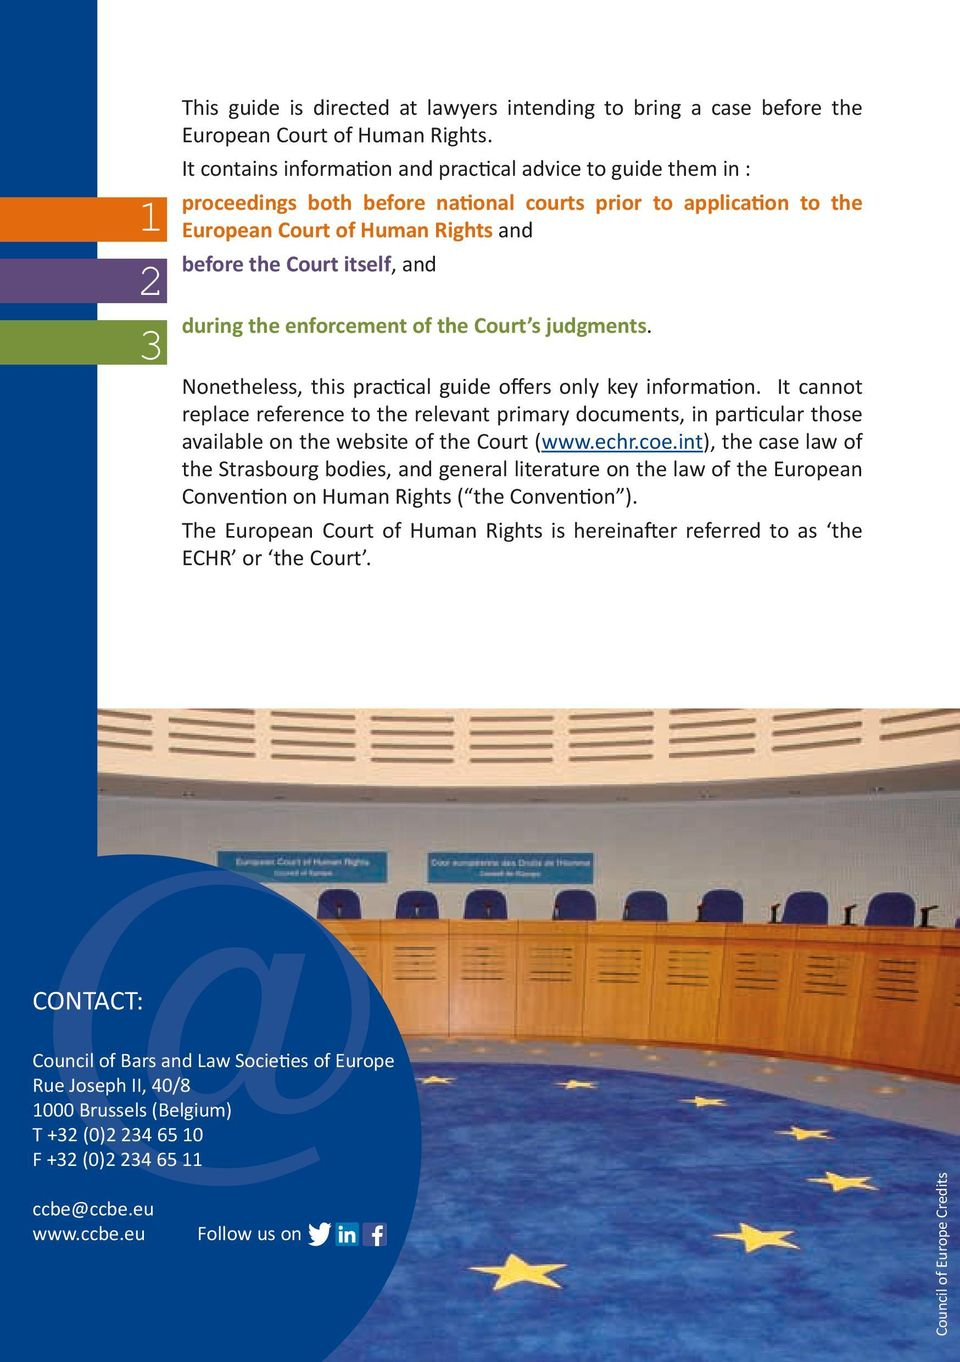 during the enforcement of the Court s judgments. Nonetheless, this practical guide offers only key information.